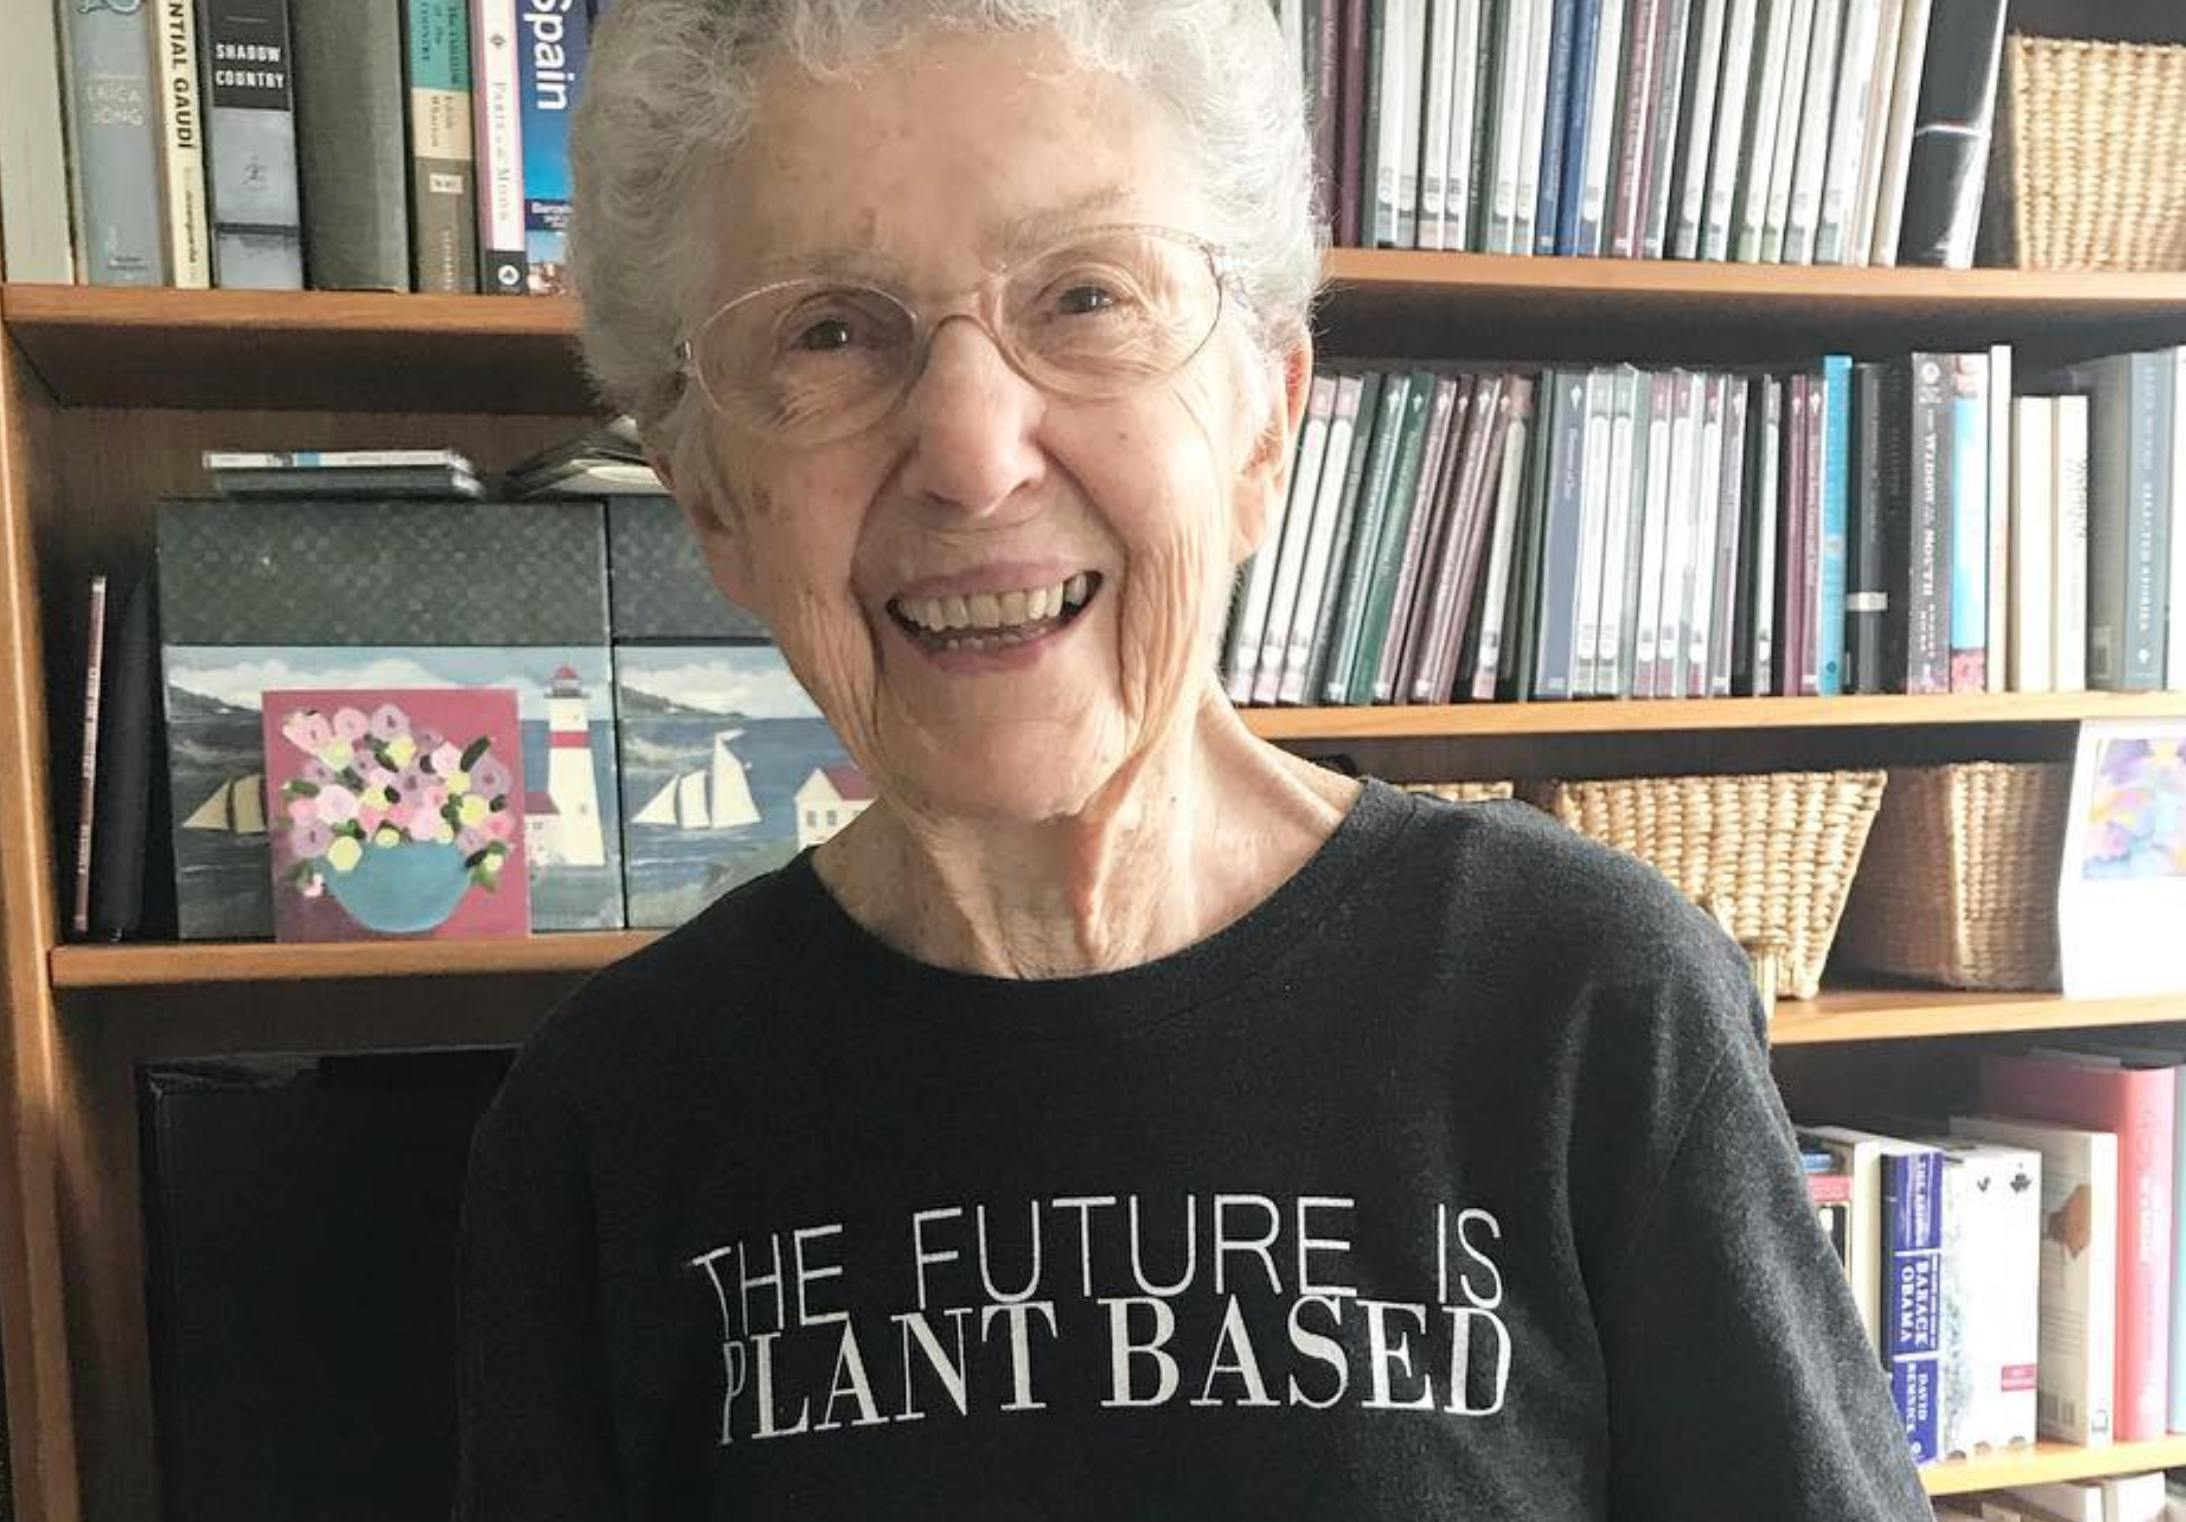 97-year-old vegan Anne Evers